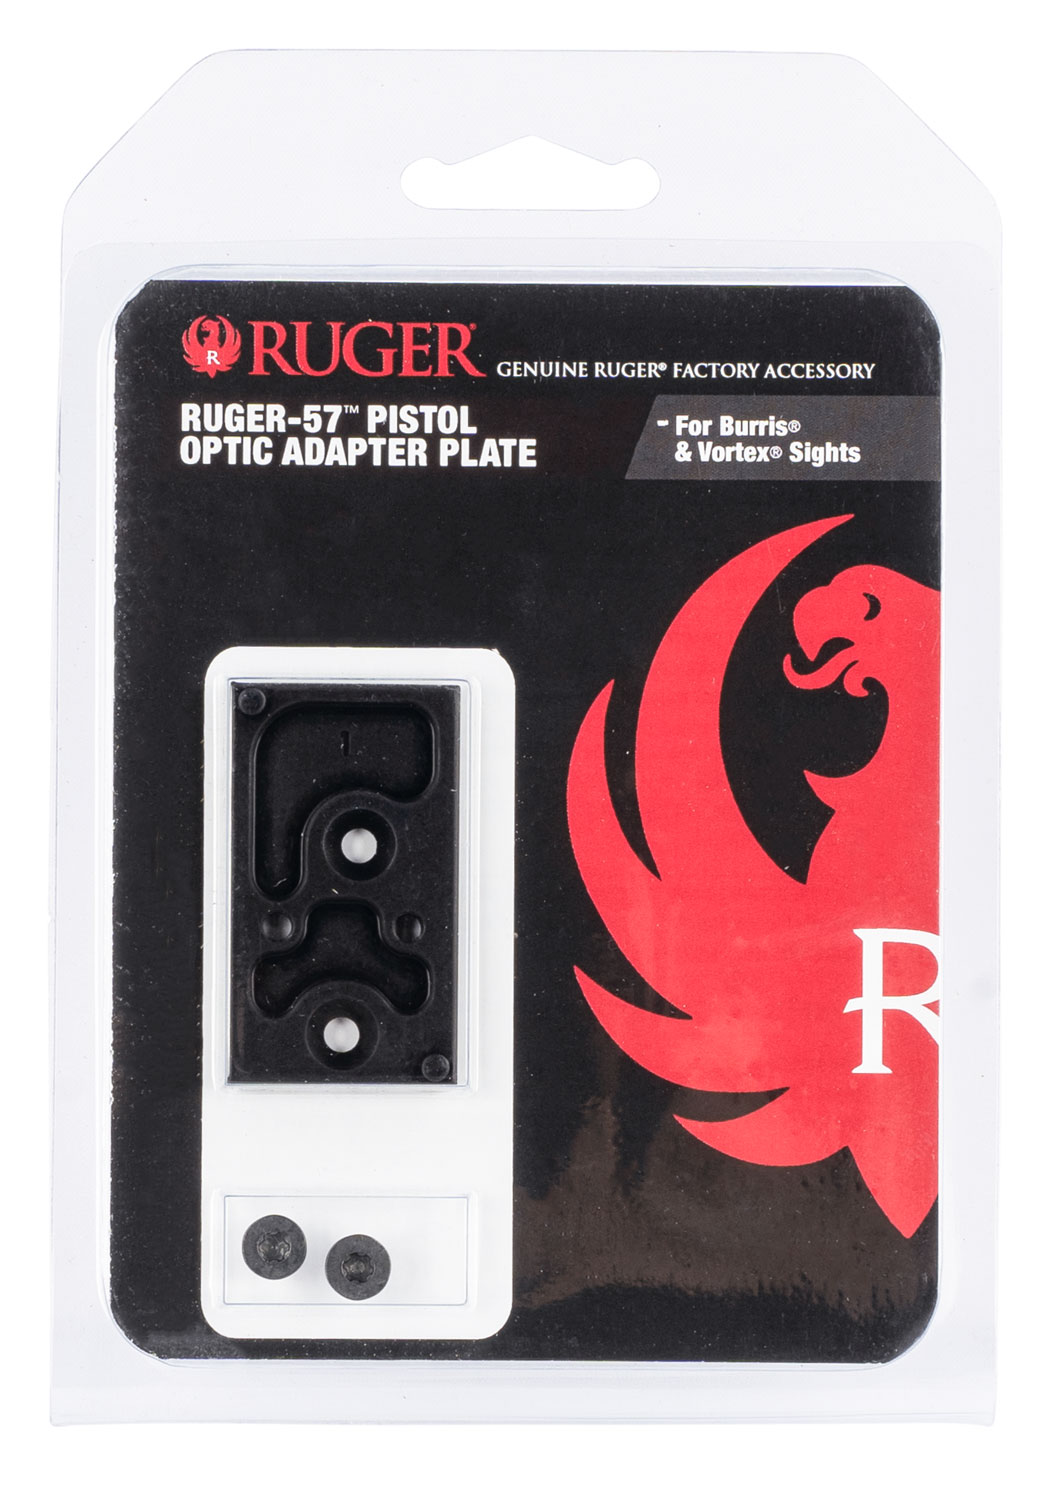 RUGER-57 OAP BURRIS  VORTEX - 90720 | OPTIC ADAPTER PLATE